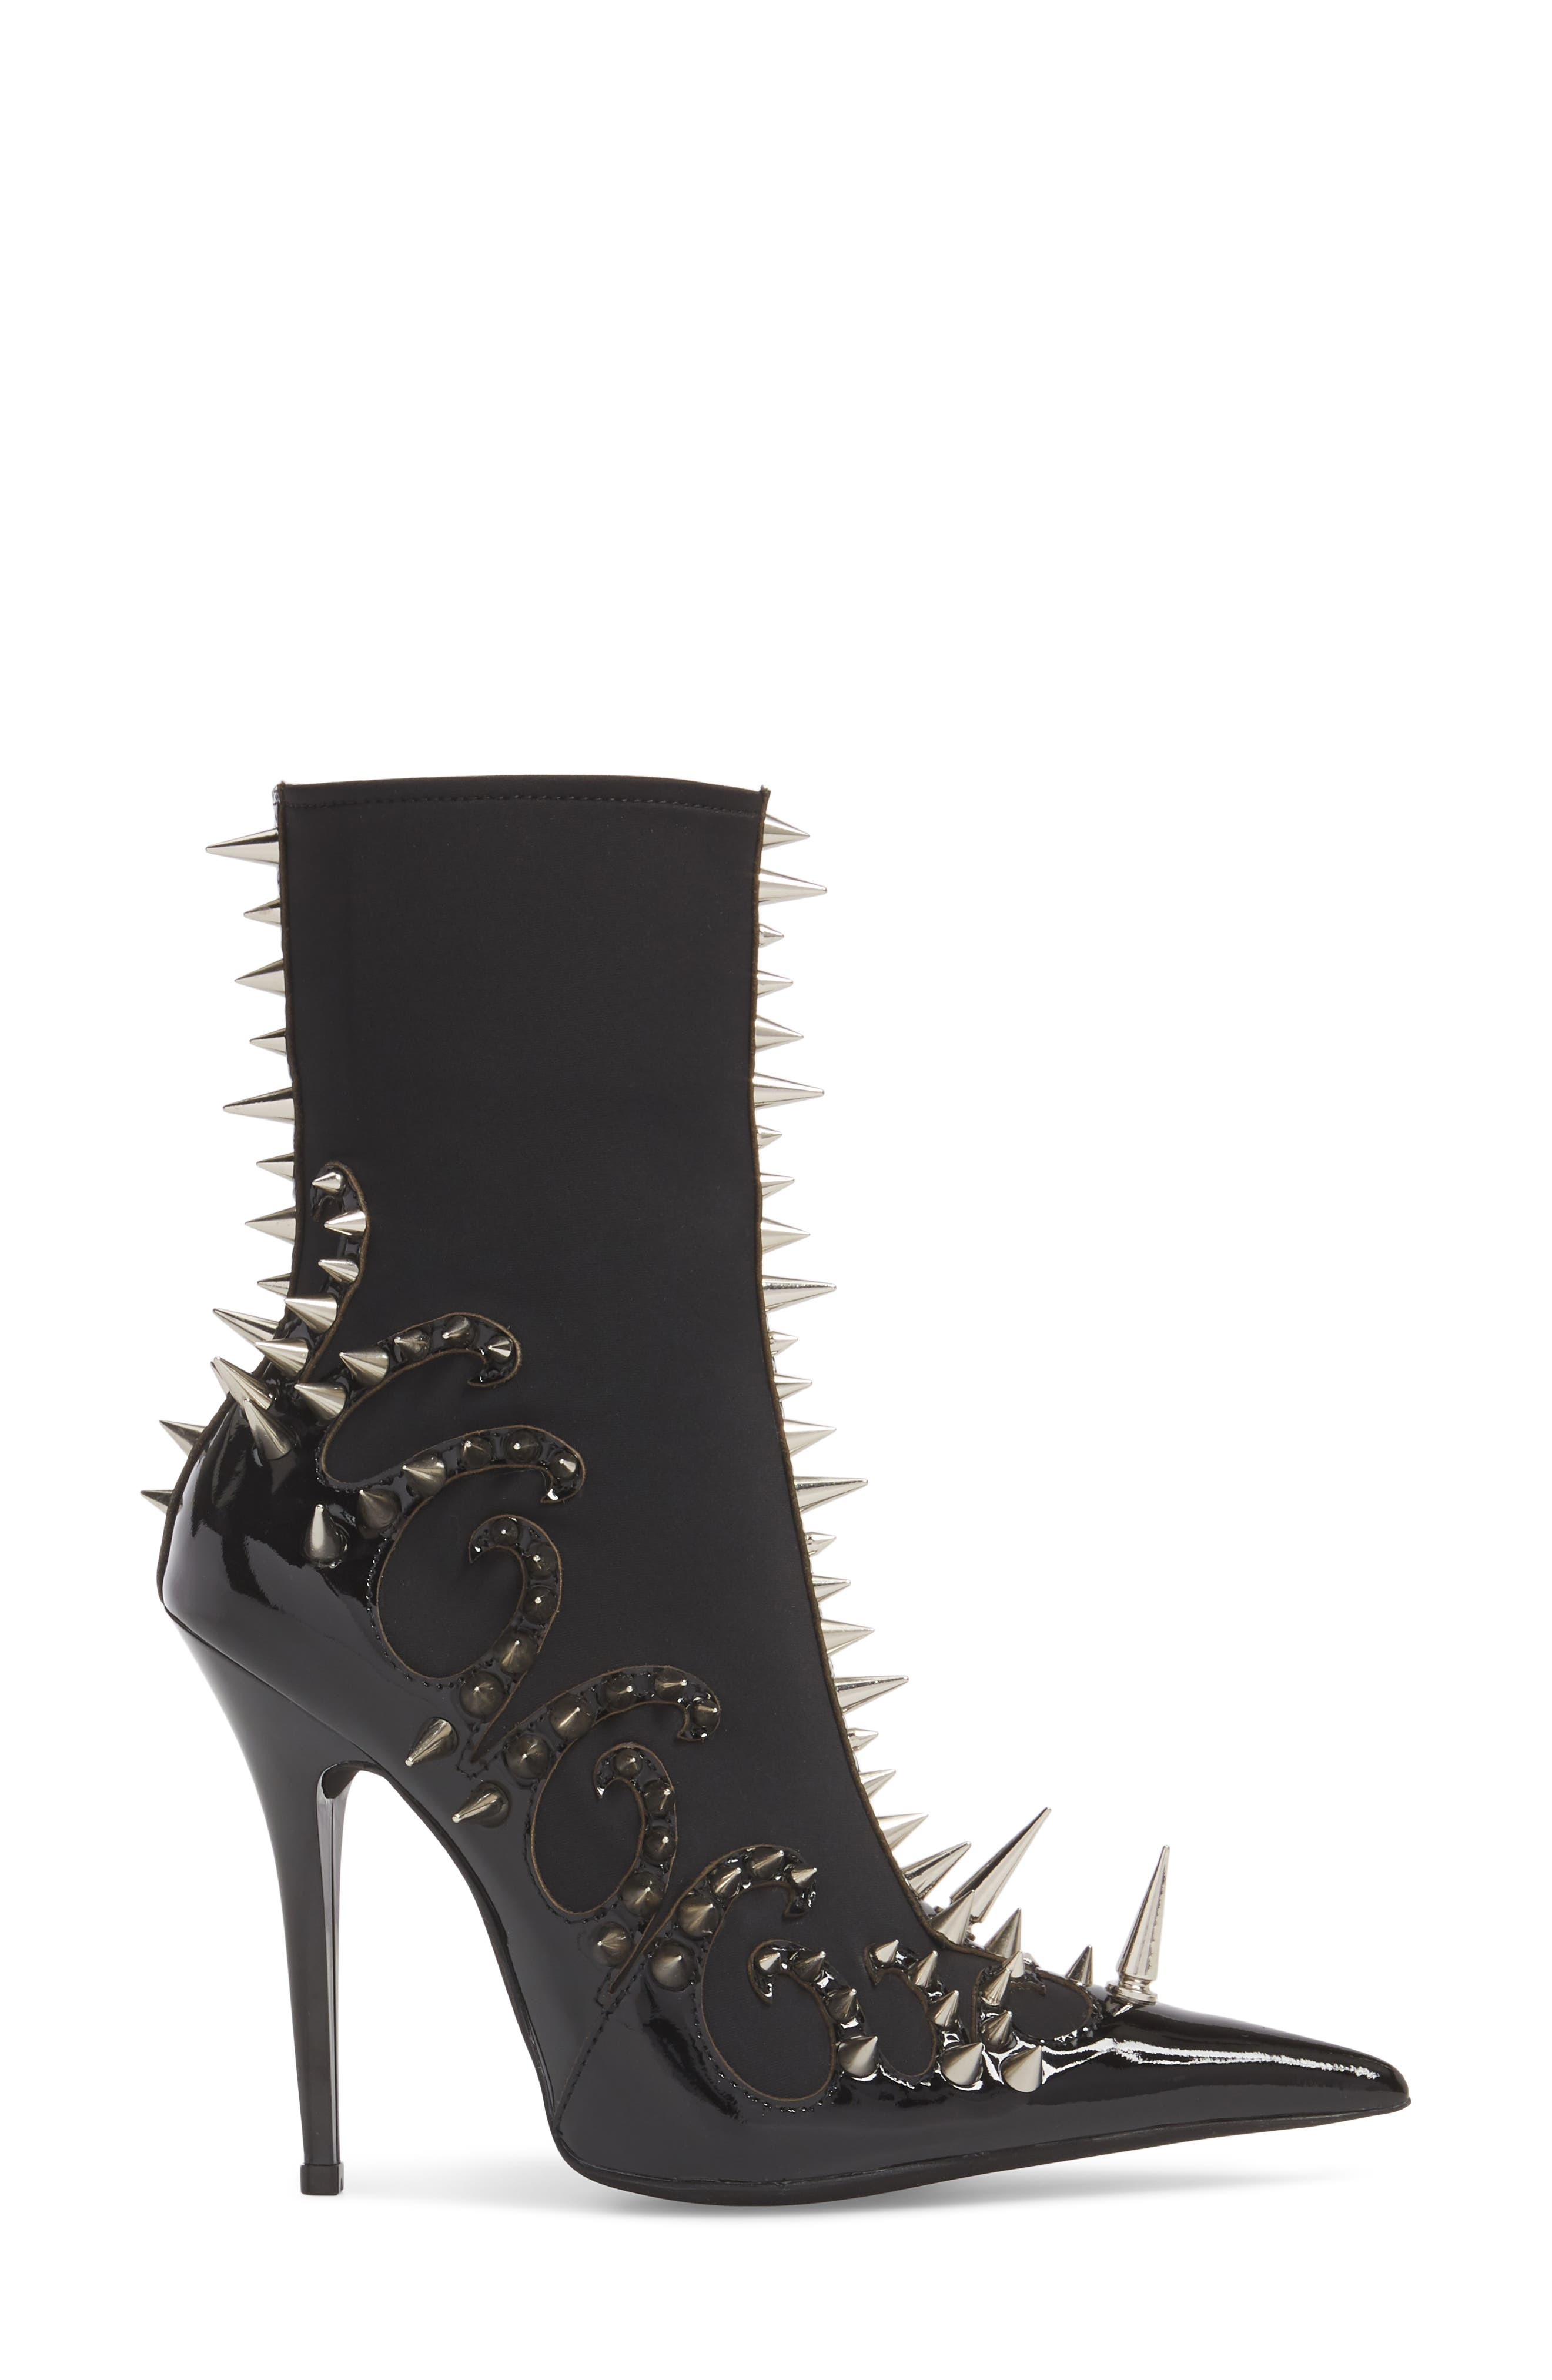 Savage Spike Bootie,                             Alternate thumbnail 3, color,                             Black/ Silver Patent Leather